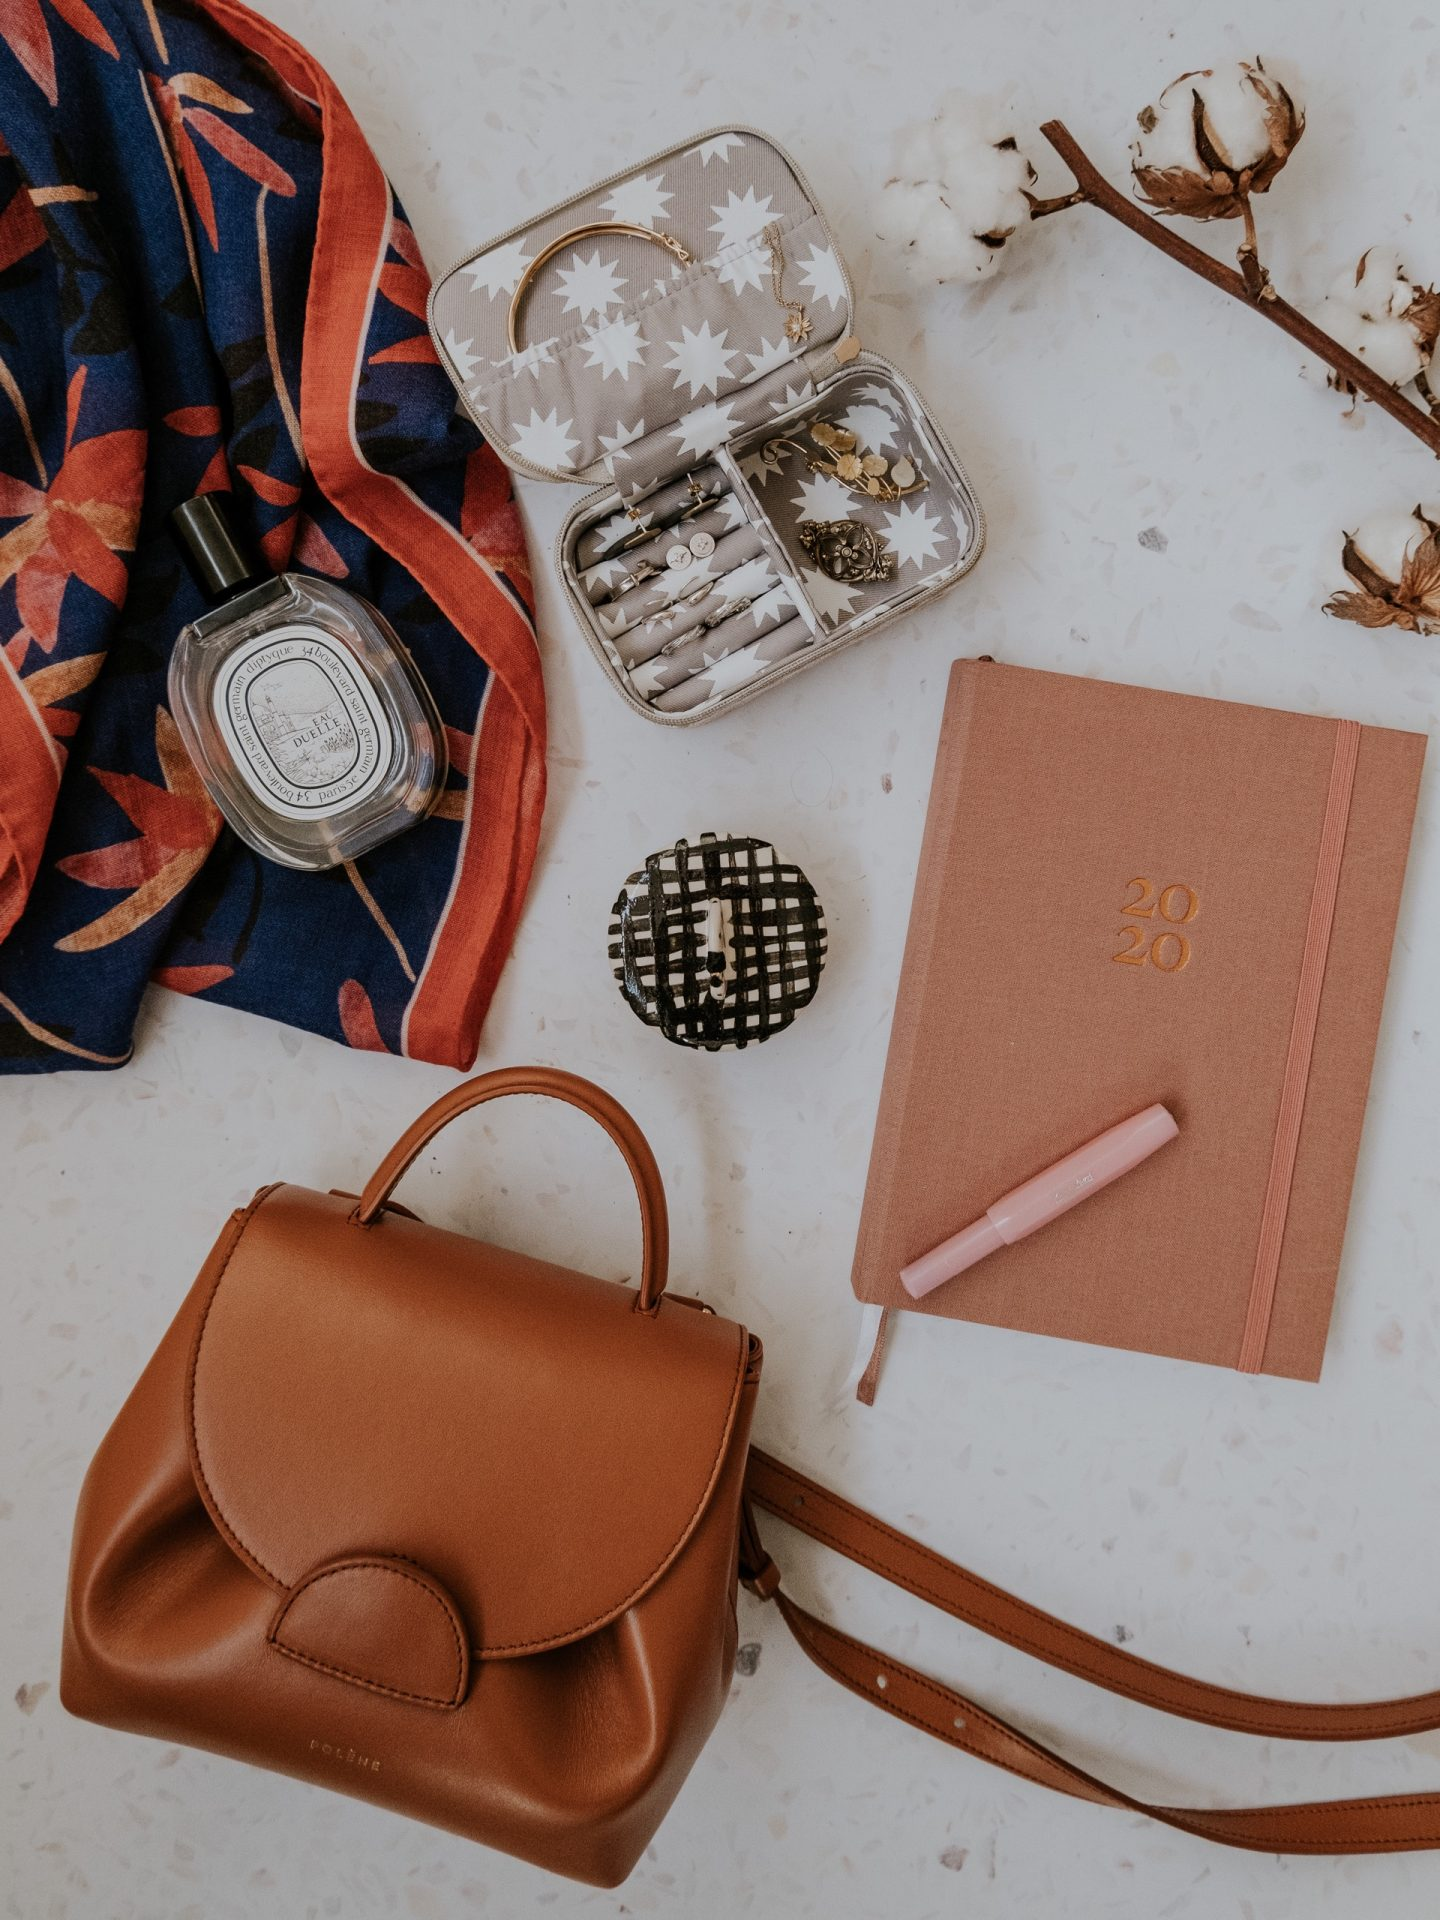 How I'm keeping organised & motivated in 2020